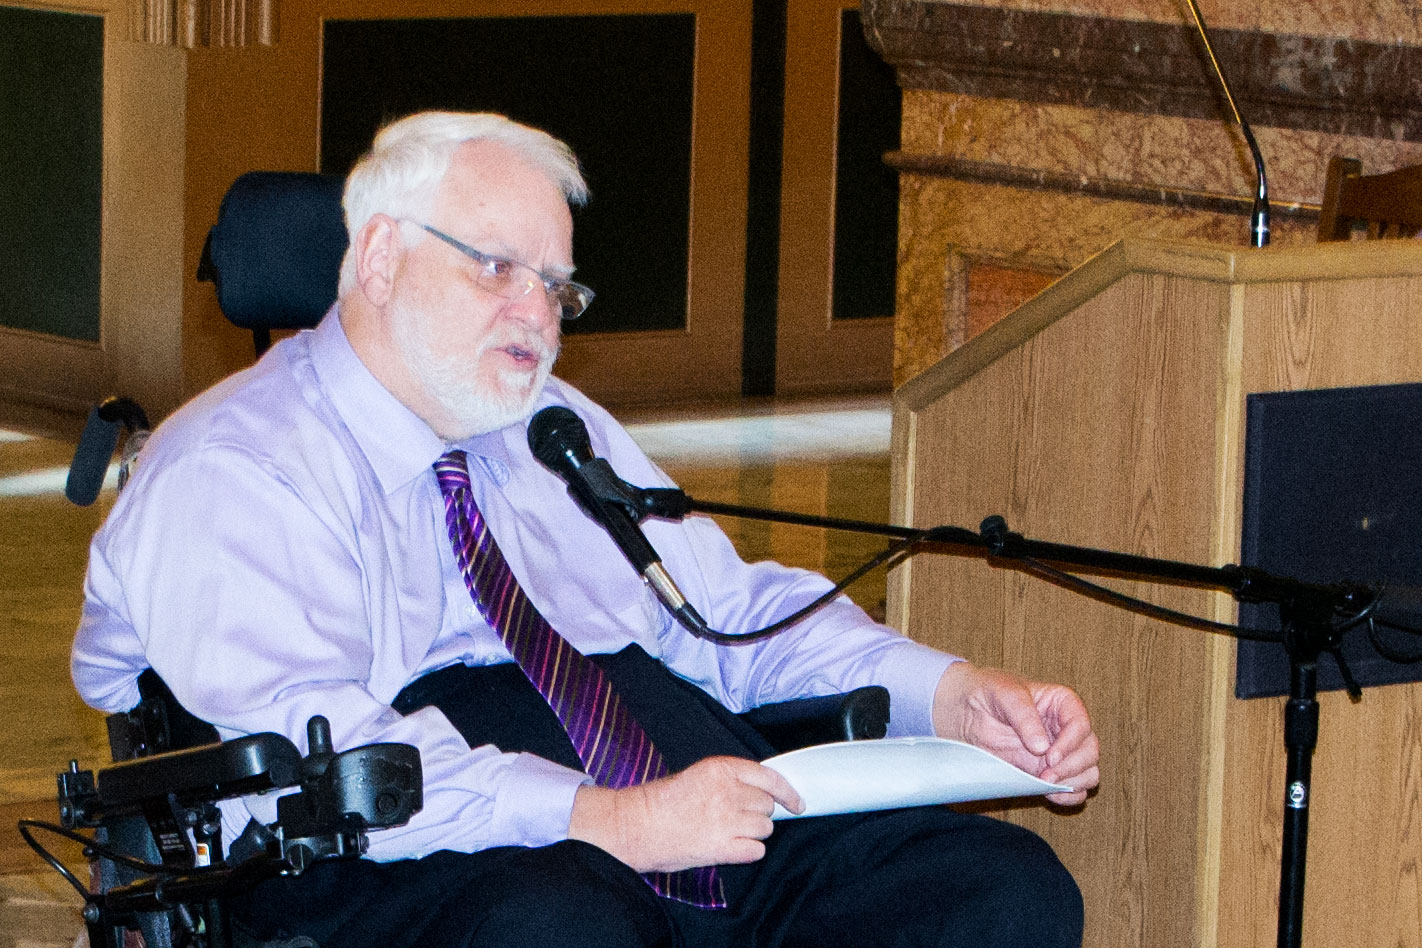 DCF Rehabilitation Services Director Mike Donnelly at today's 25th anniversary of the ADA celebration